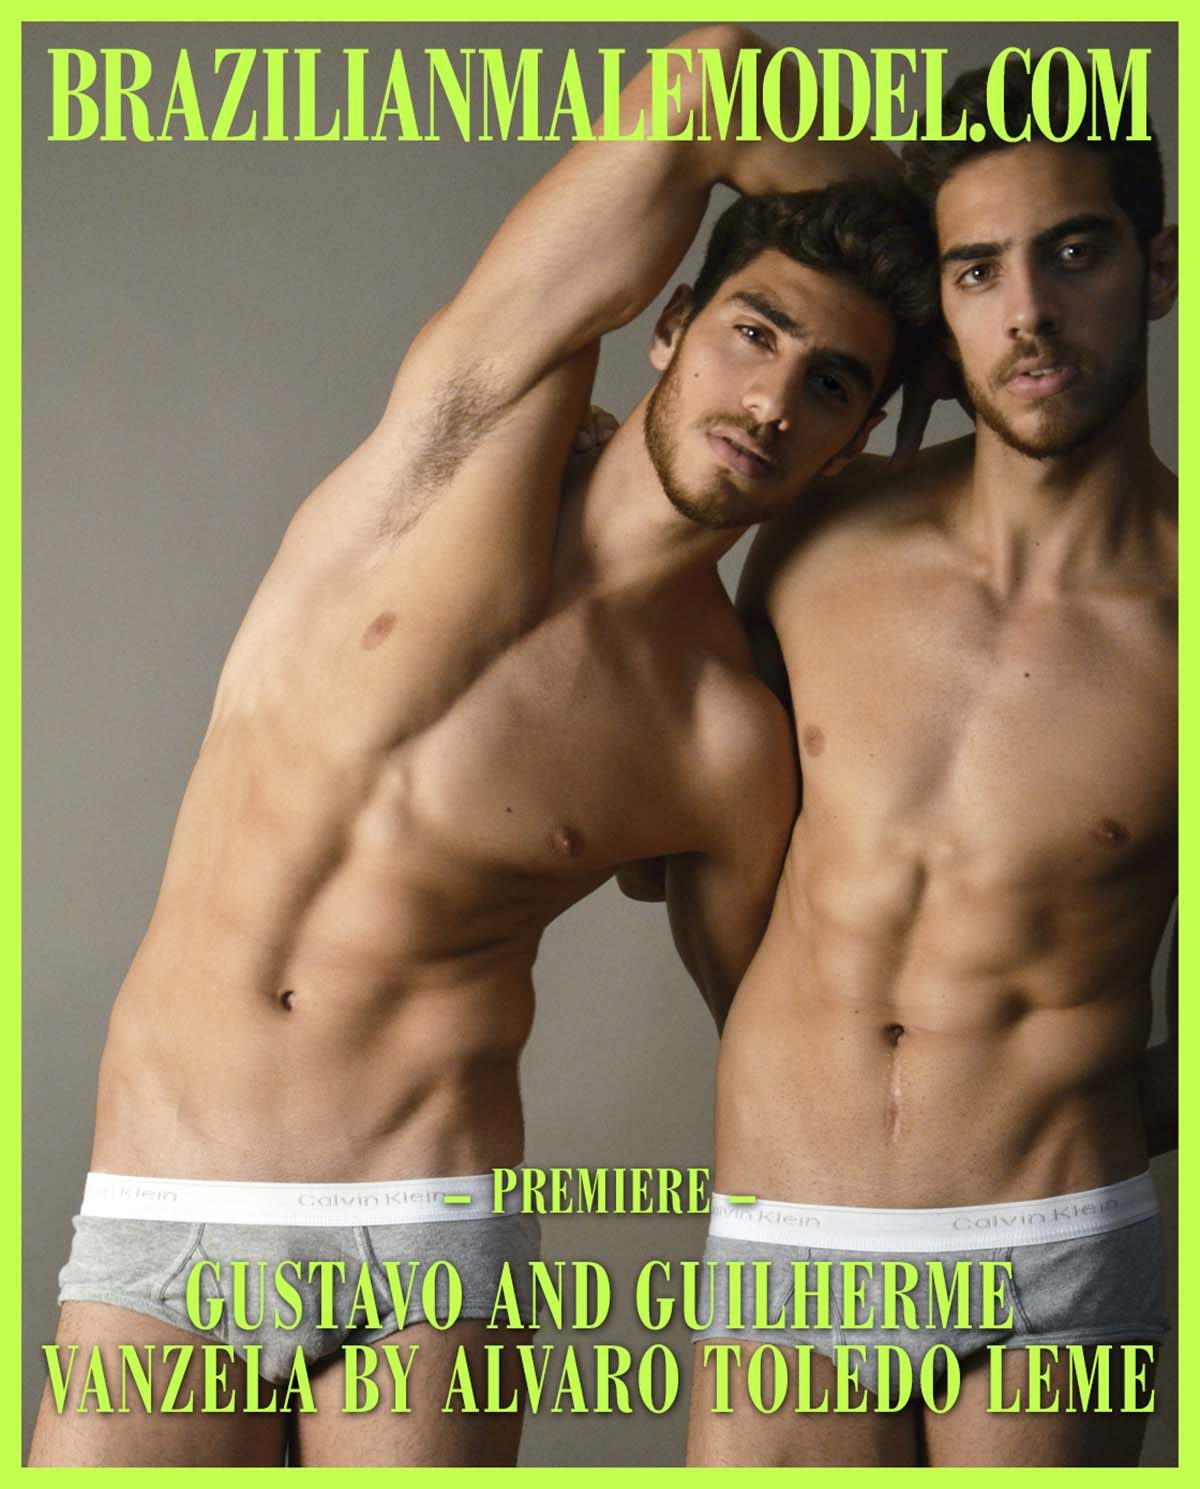 Gustavo and Guilherme Vanzela by Alvaro Toledo Leme